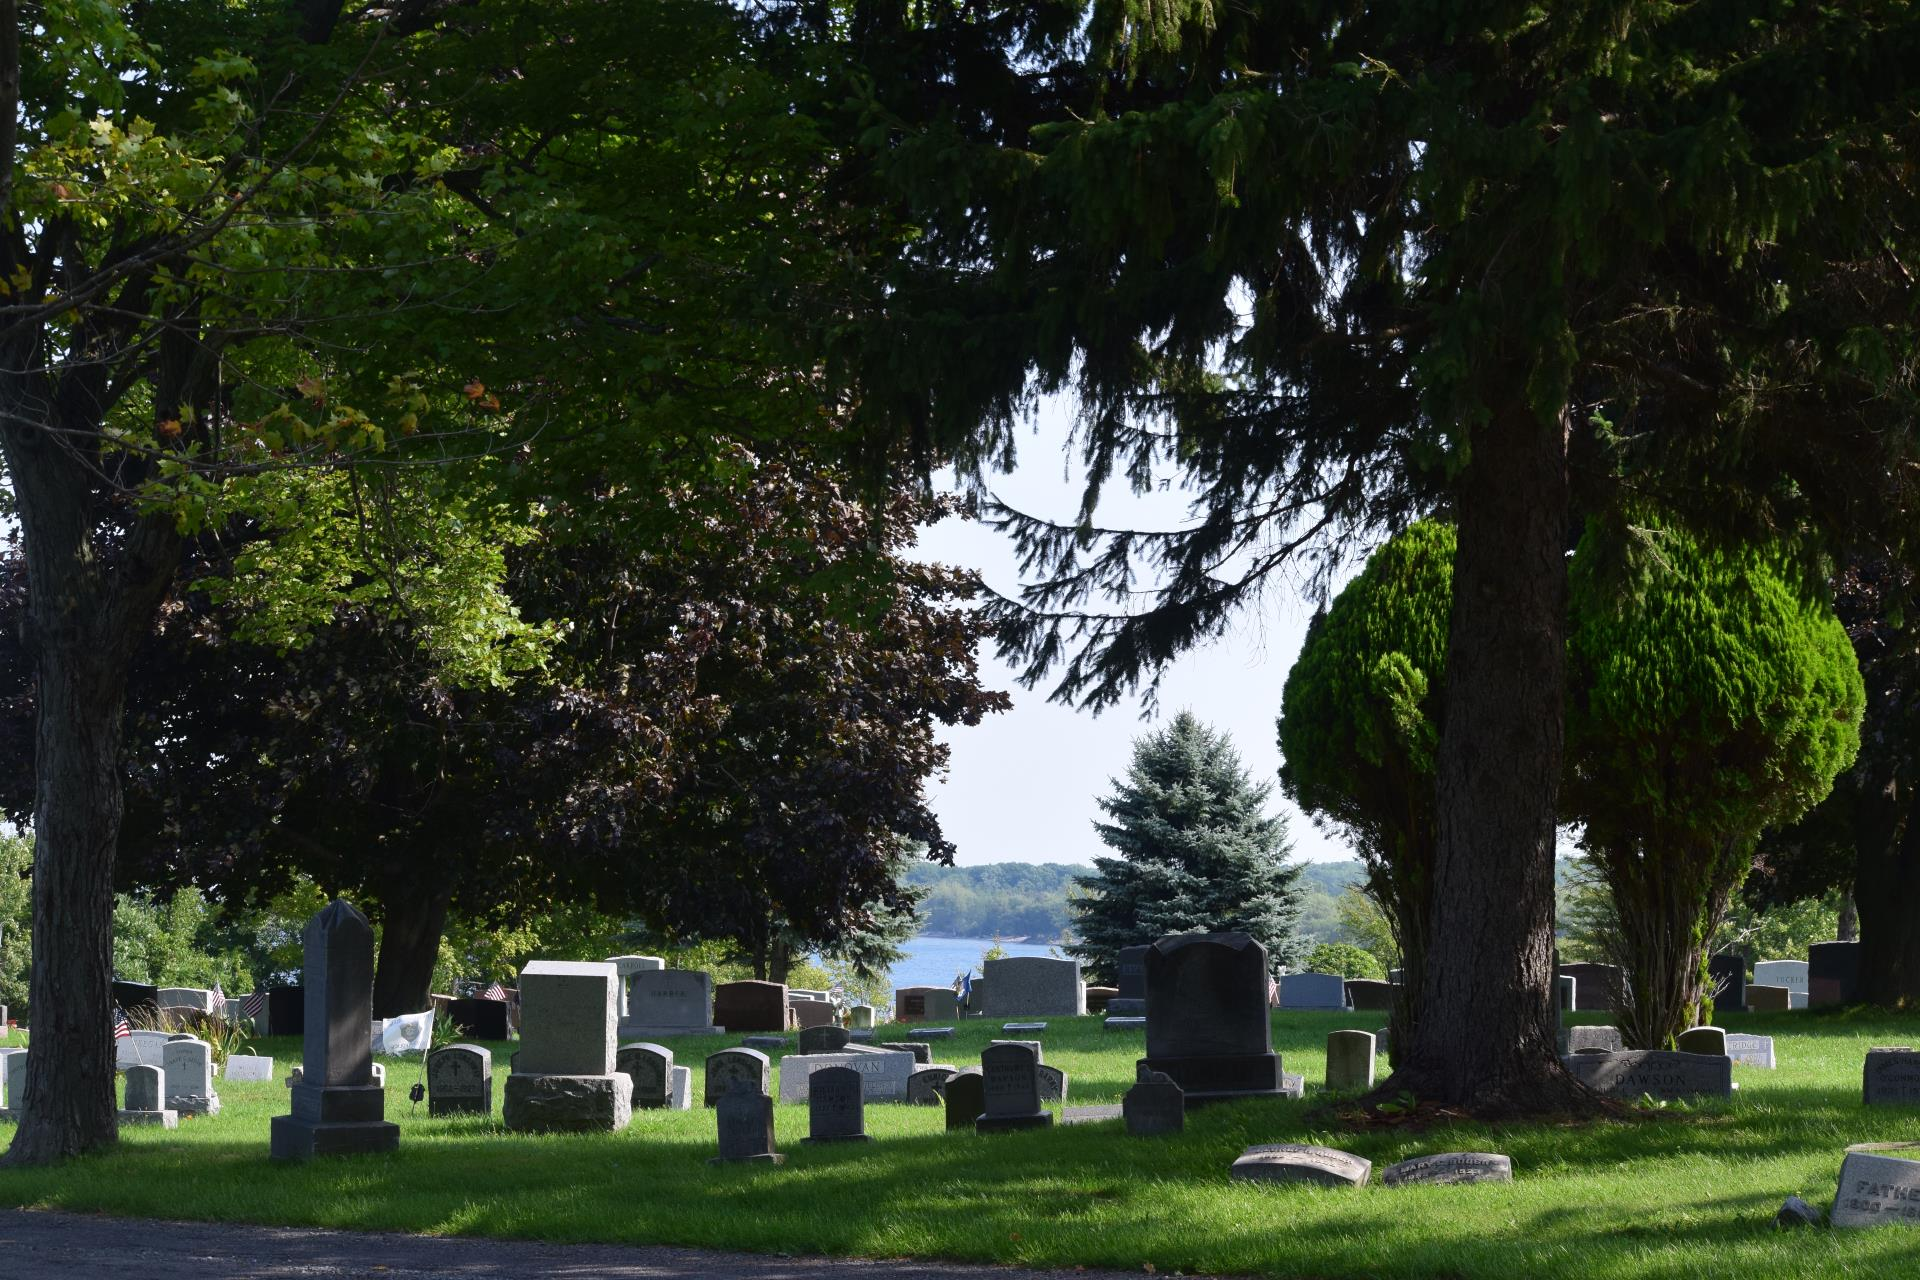 Burial grounds at St. Paul's Cemetery in Oswego